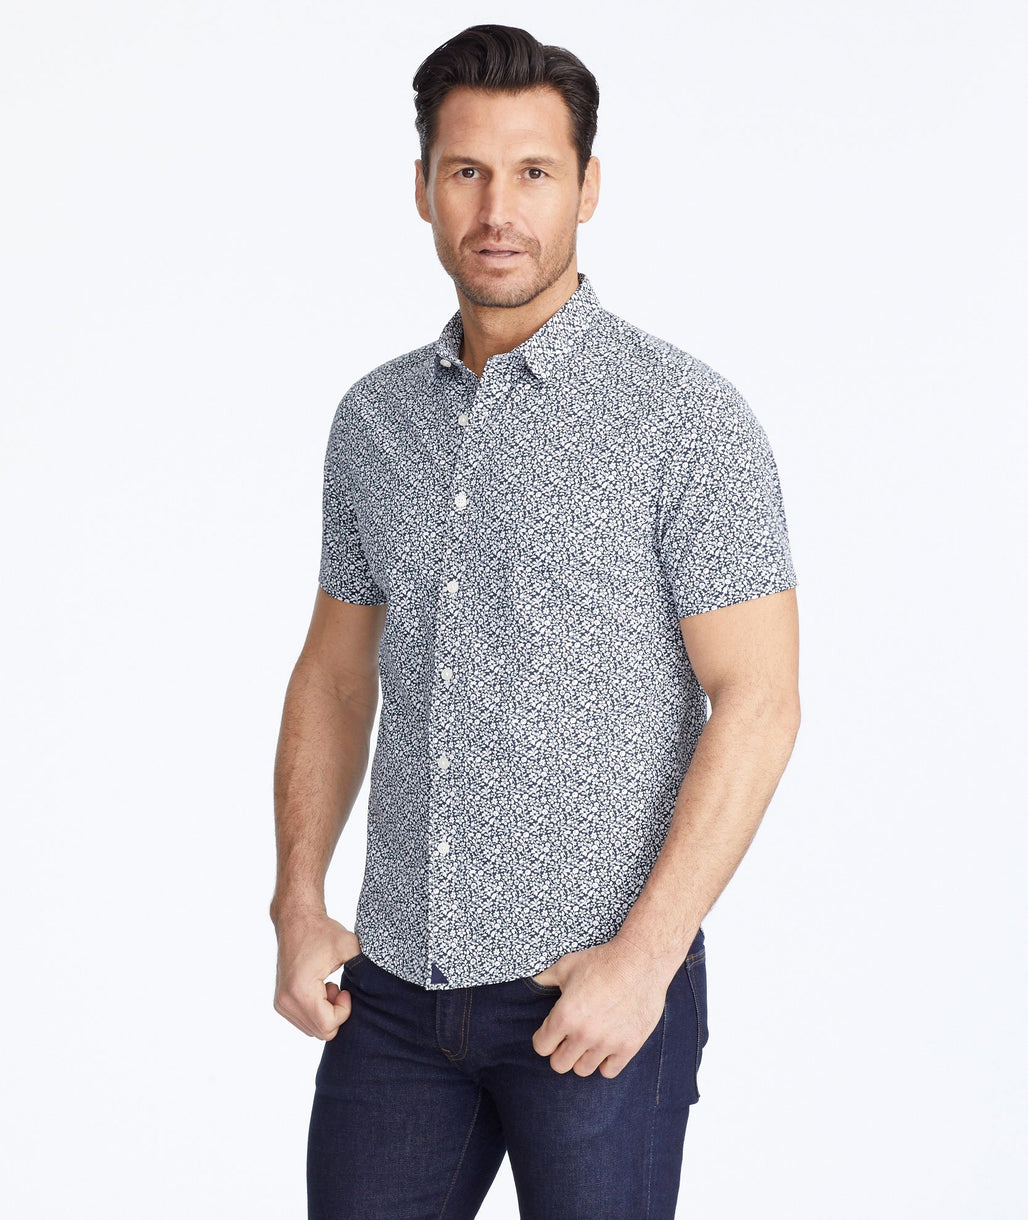 Model wearing a Blue Wrinkle-Free Performance Short-Sleeve Chaddsford Shirt